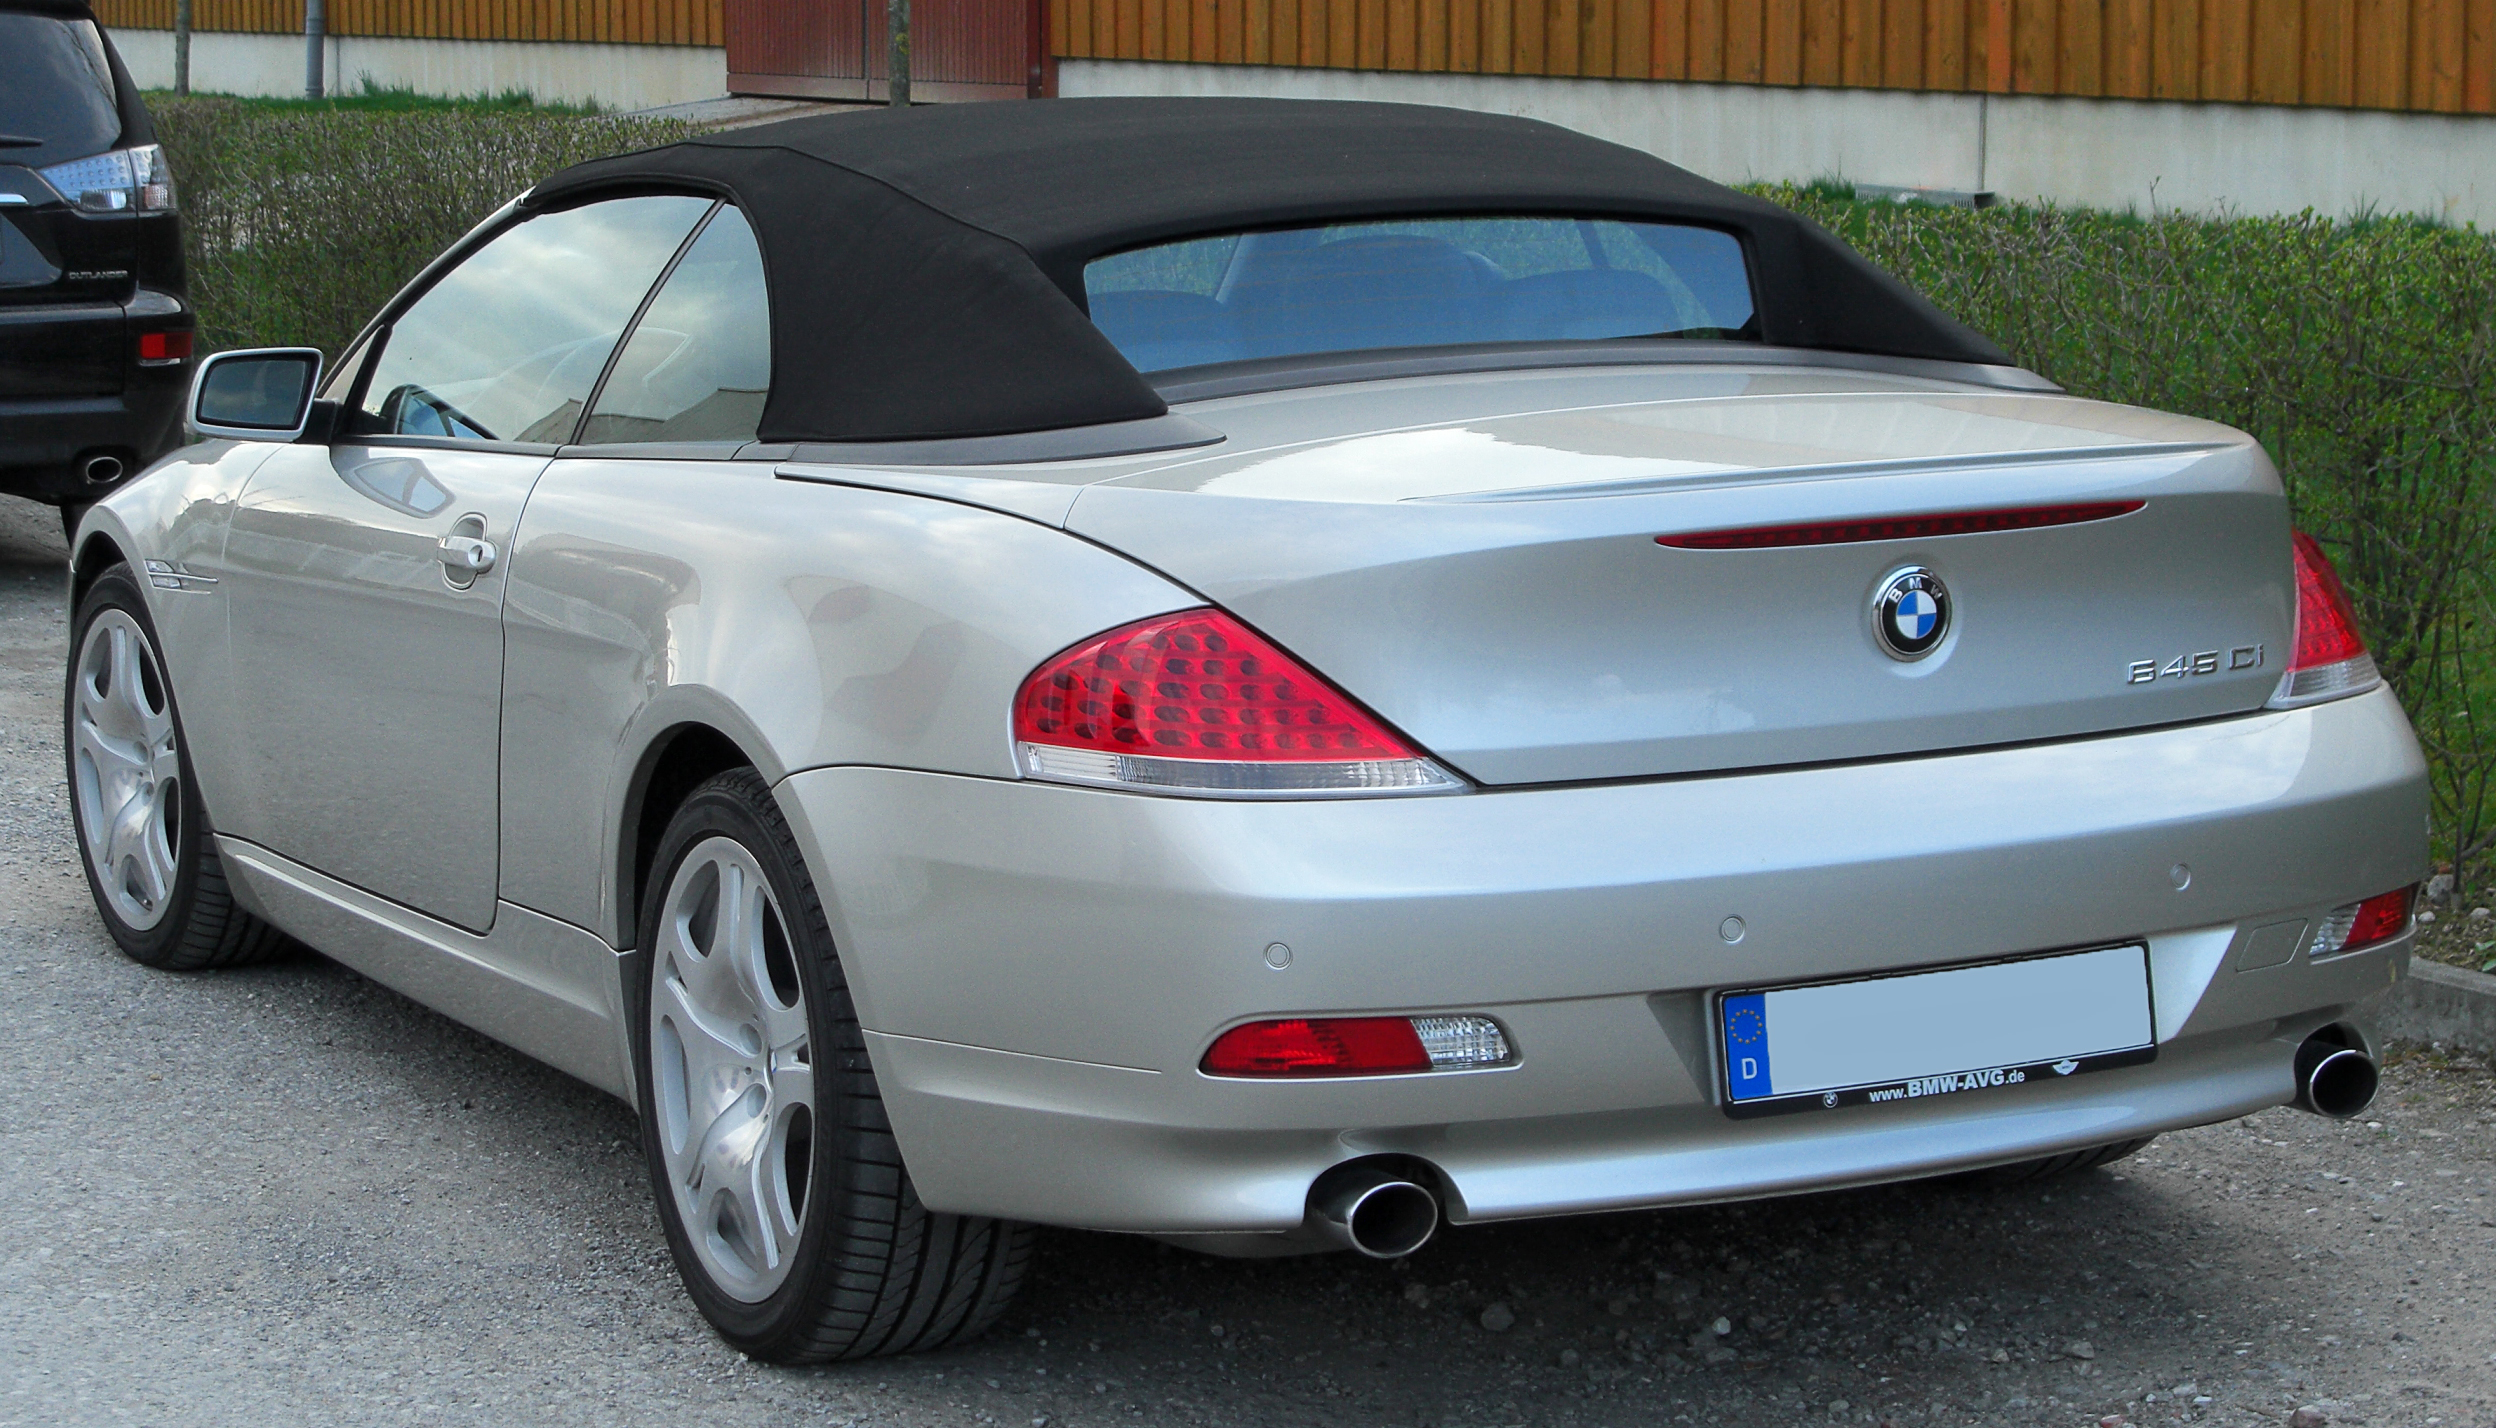 bmw 6er convertible (e64) 2004 wallpaper